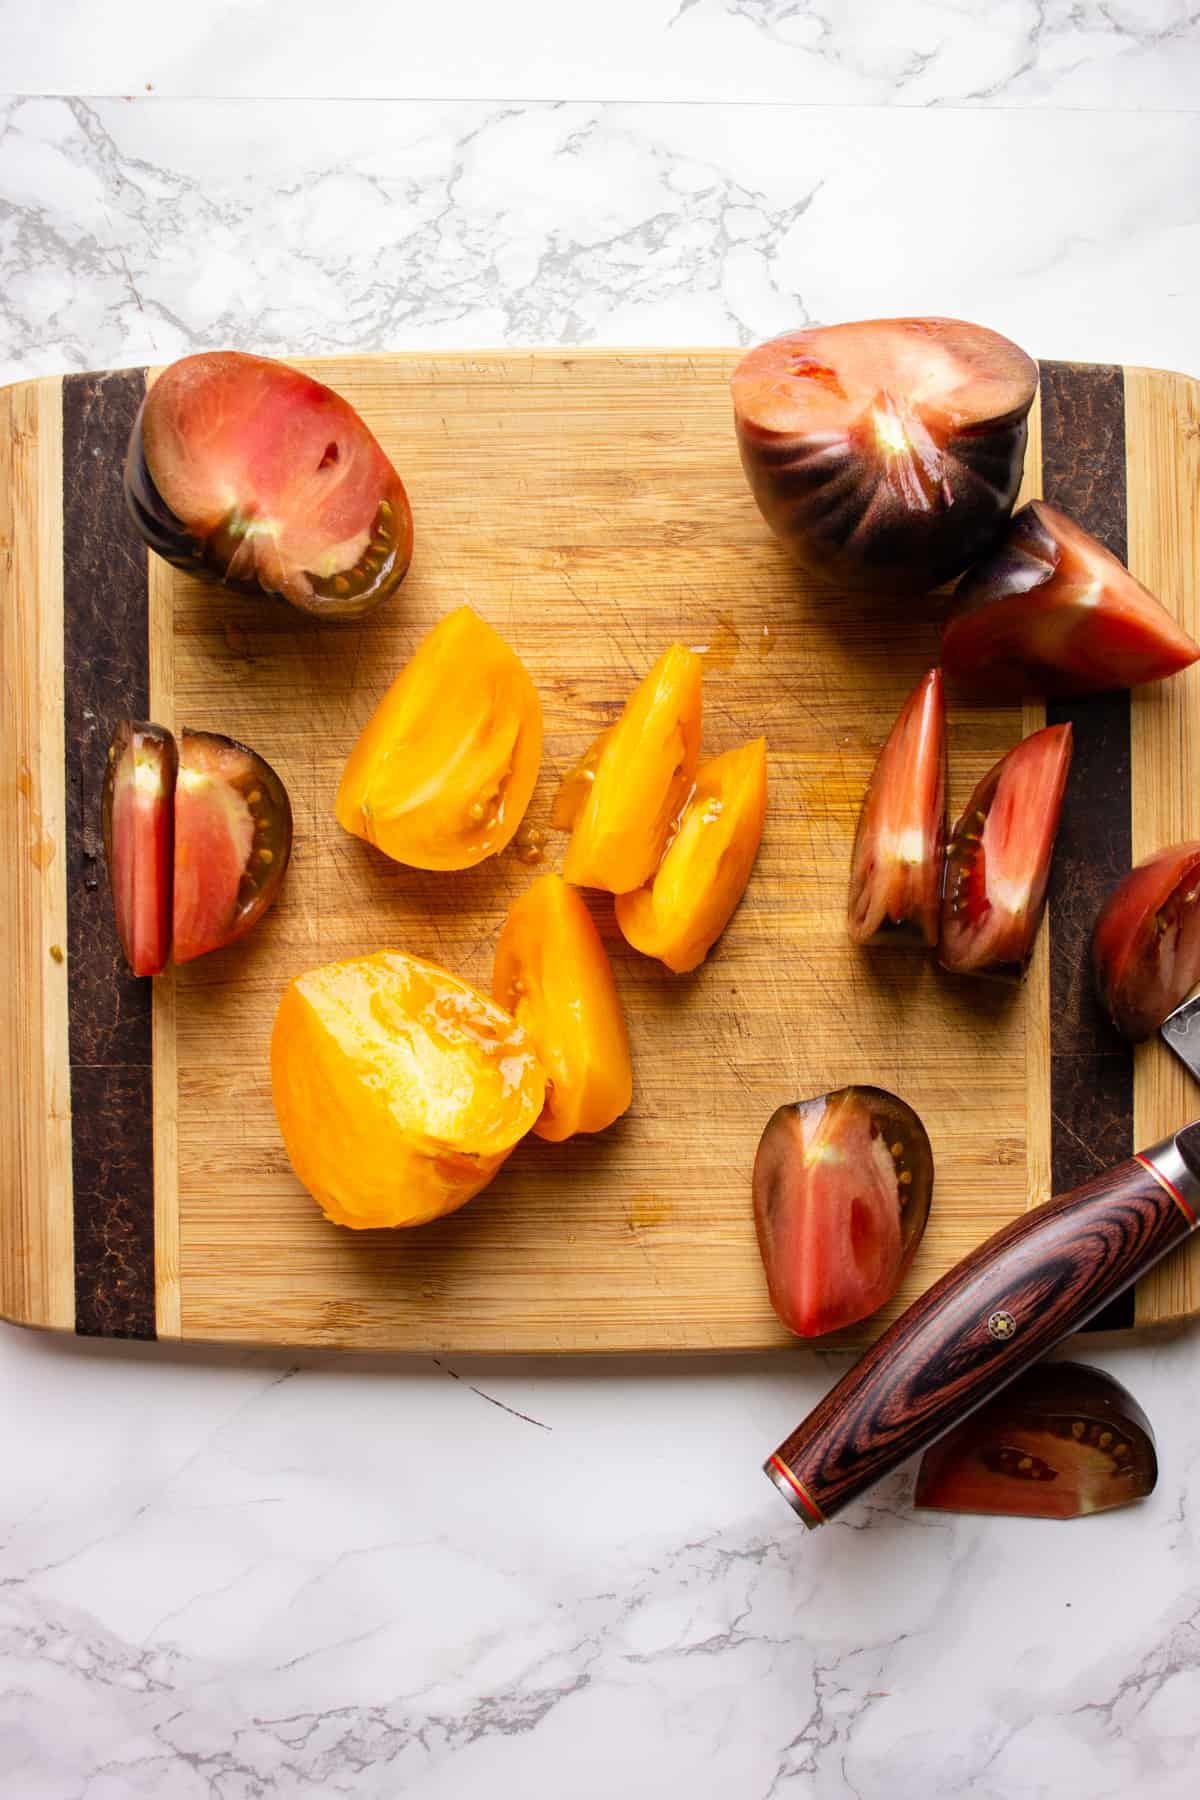 Cutting heirloom tomatoes into wedges